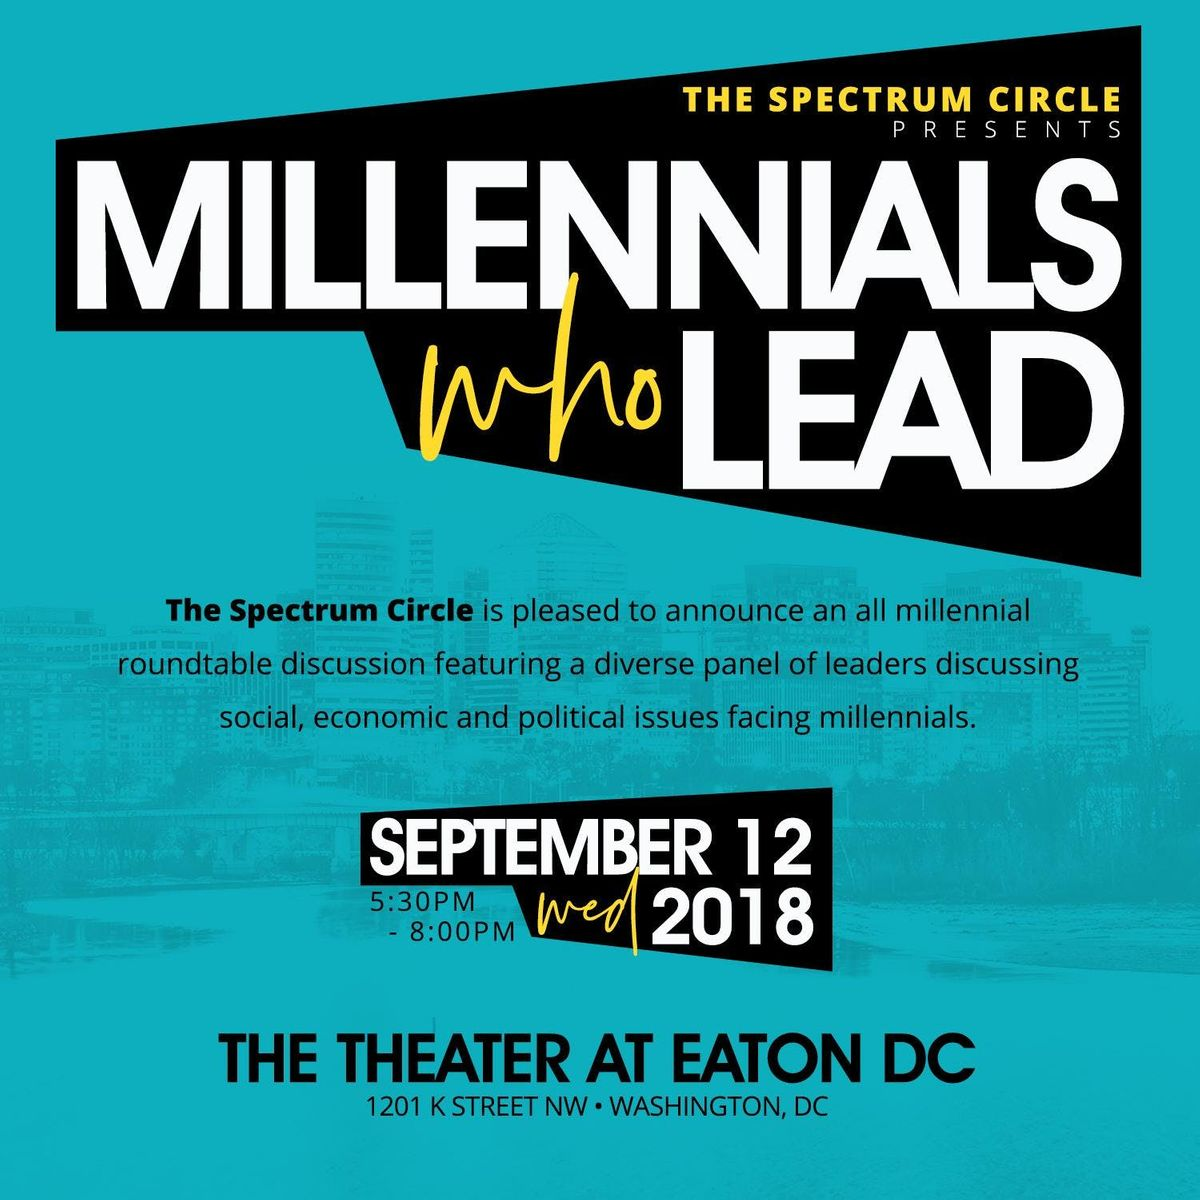 The Spectrum Circle presents Millennials Who Lead at The